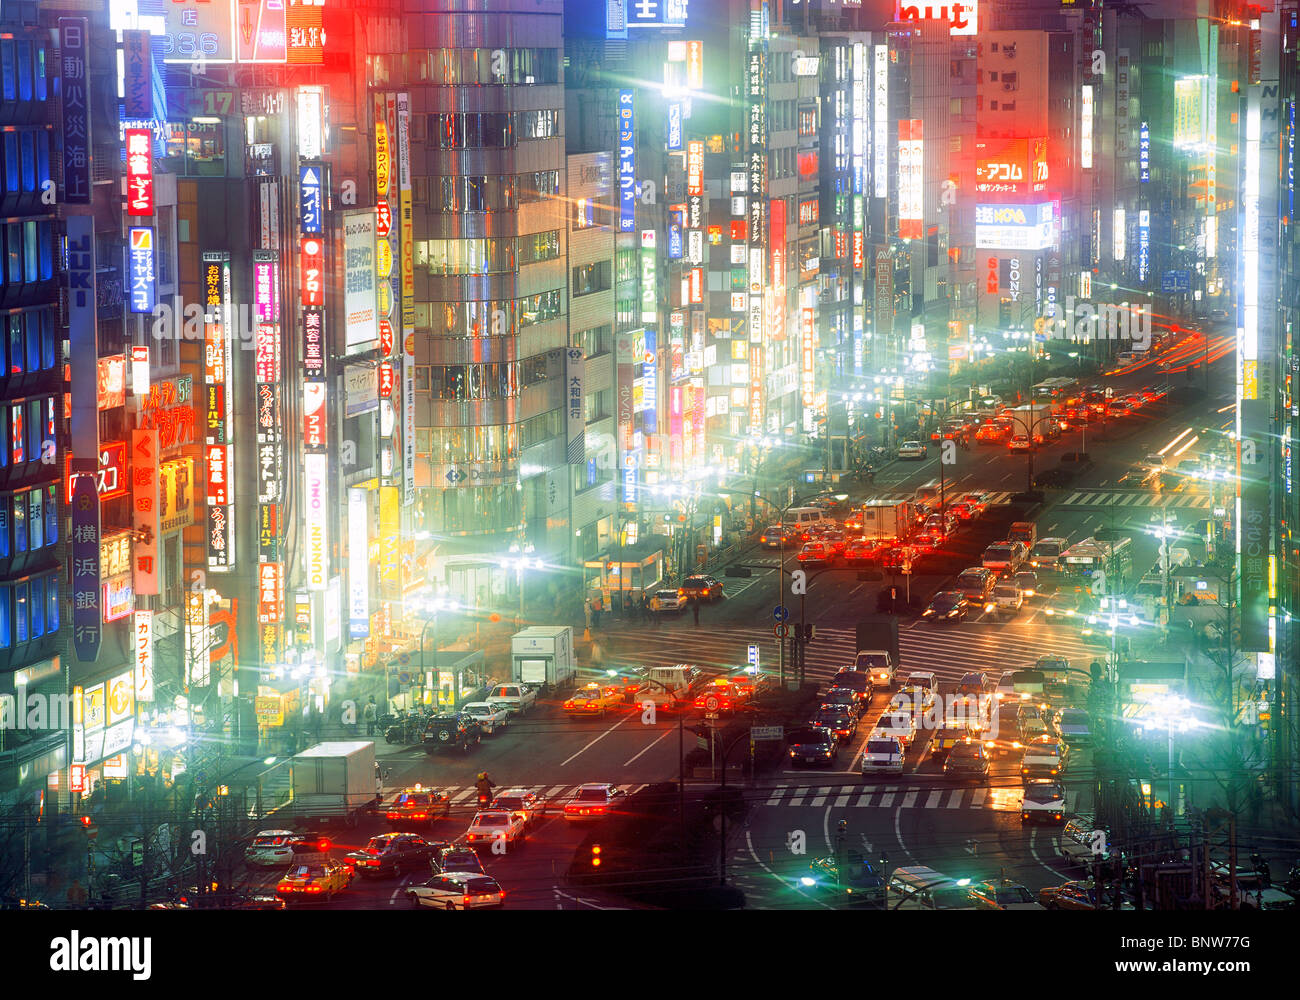 Neon lights and busy streets in Shinjuku District of Tokyo at night - Stock Image